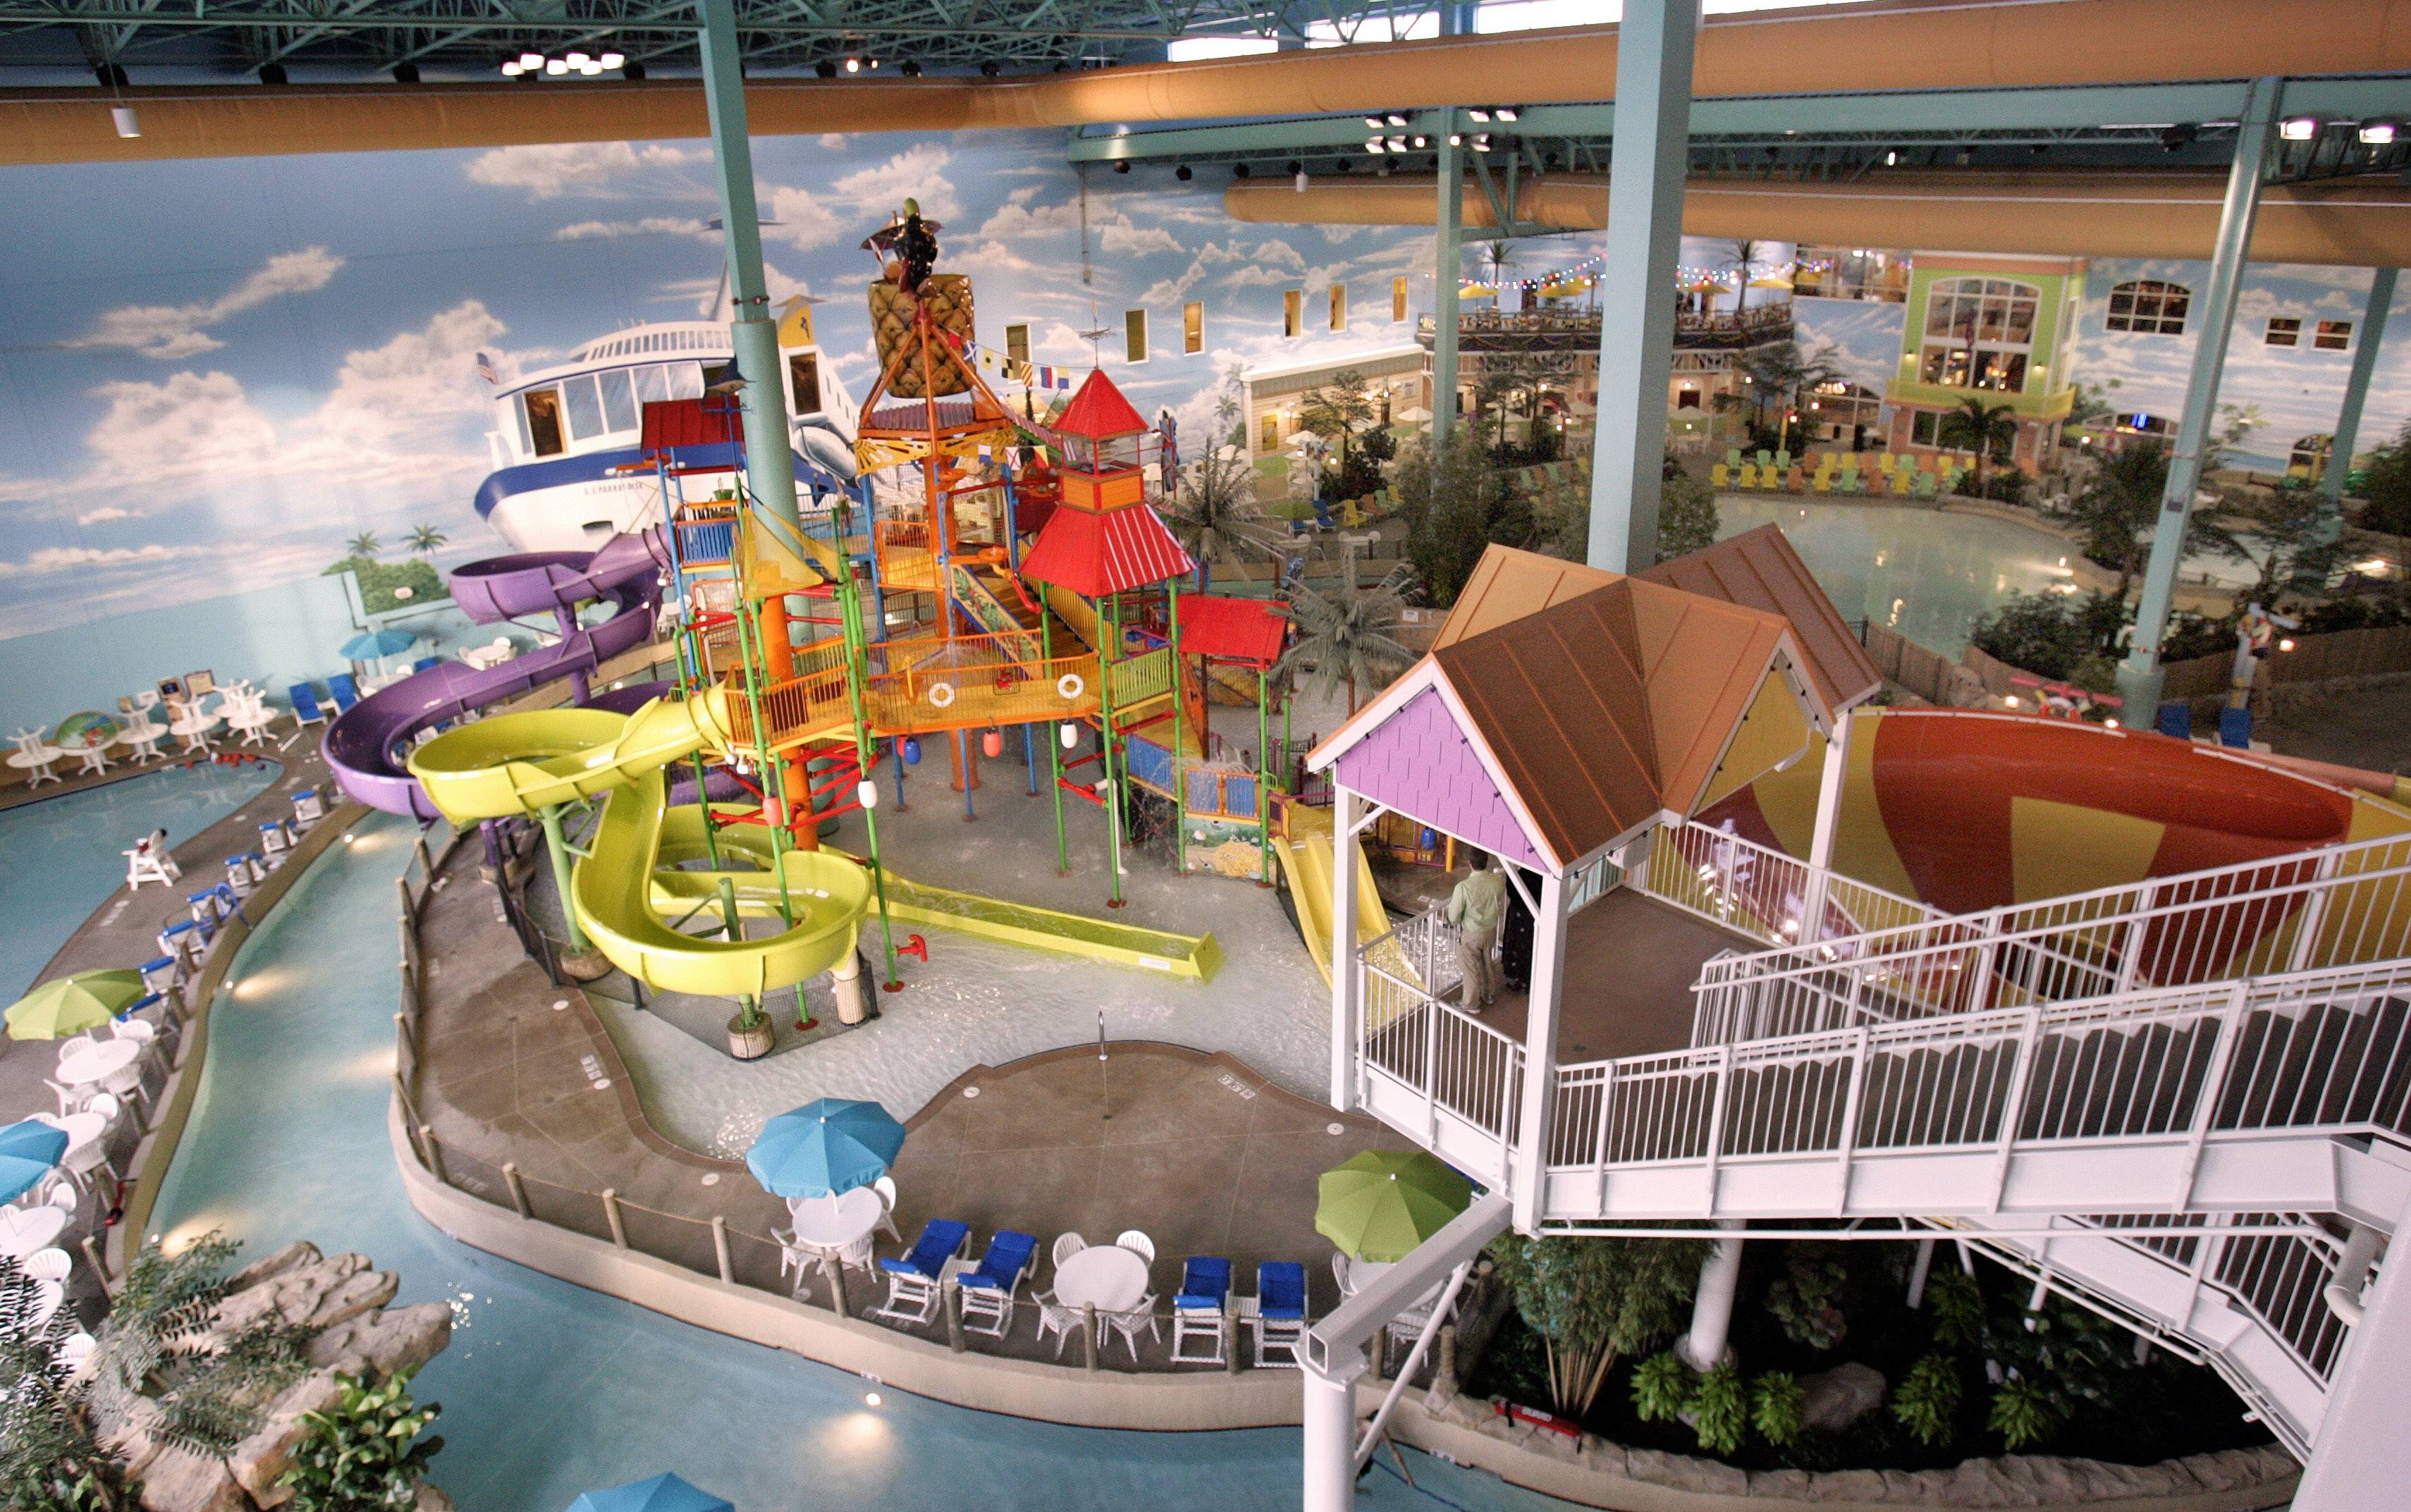 Gurnee approves revenue deal for Great Wolf Lodge